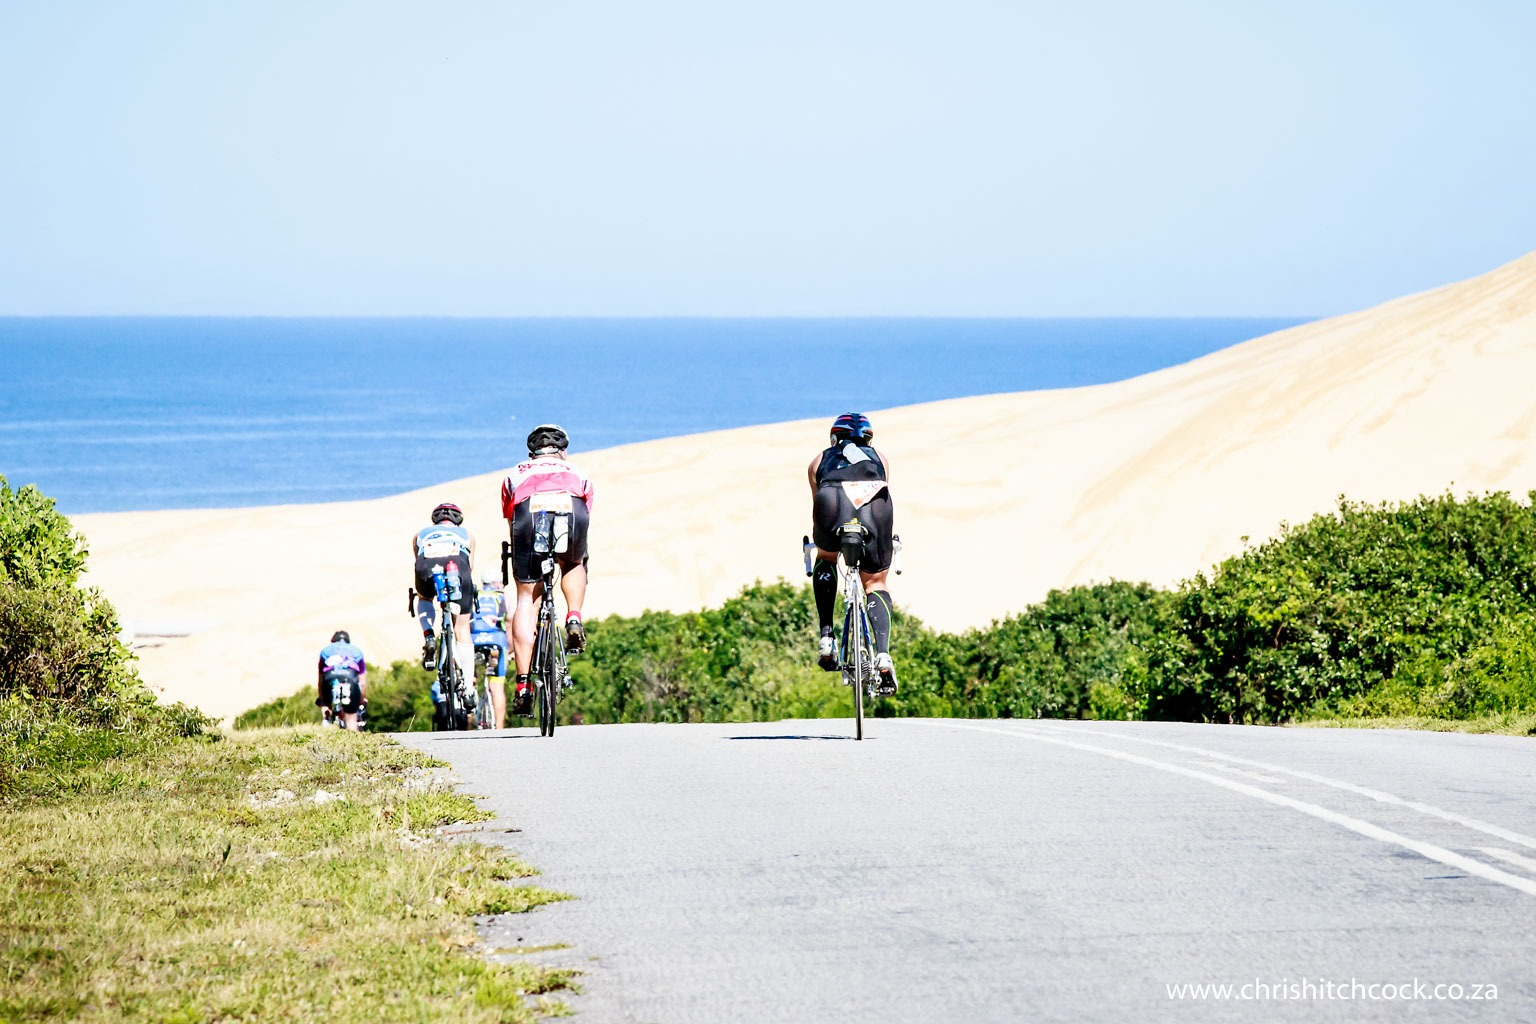 At the farthest point of the 2 loop bike circuit is the Maitland river mouth, and the Maitland 'sand mountain'. At this point riders turn left up a steep hill and hit the prevailing Easterly wind. Beyond this turnaround are hundreds of miles of stunning beaches along South Africa's Garden Route.